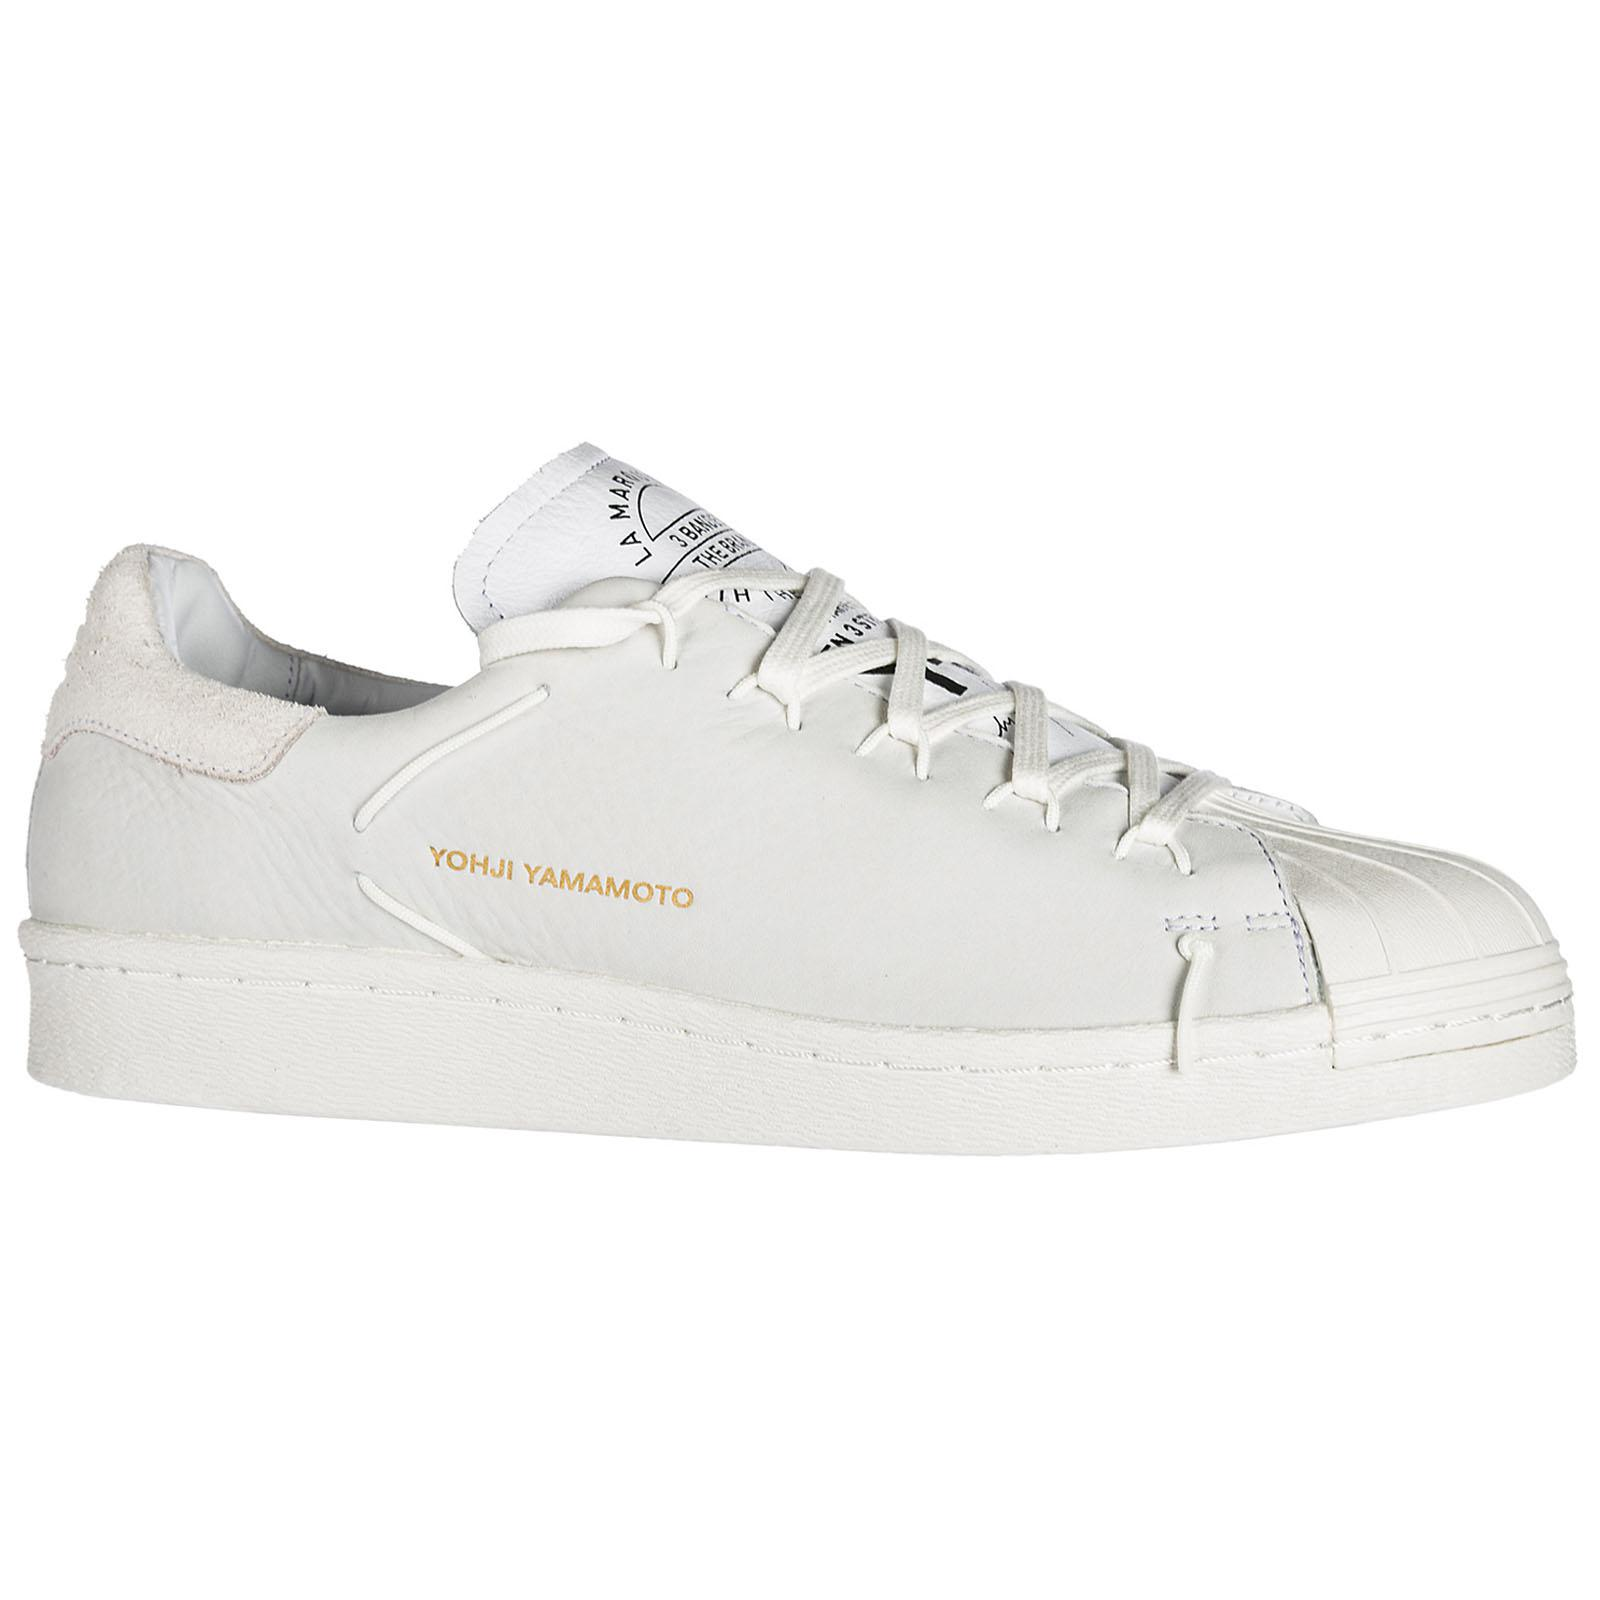 promo code e59aa d3c27 Lyst - Y-3 Shoes Trainers Sneakers Super Knot in White for Men